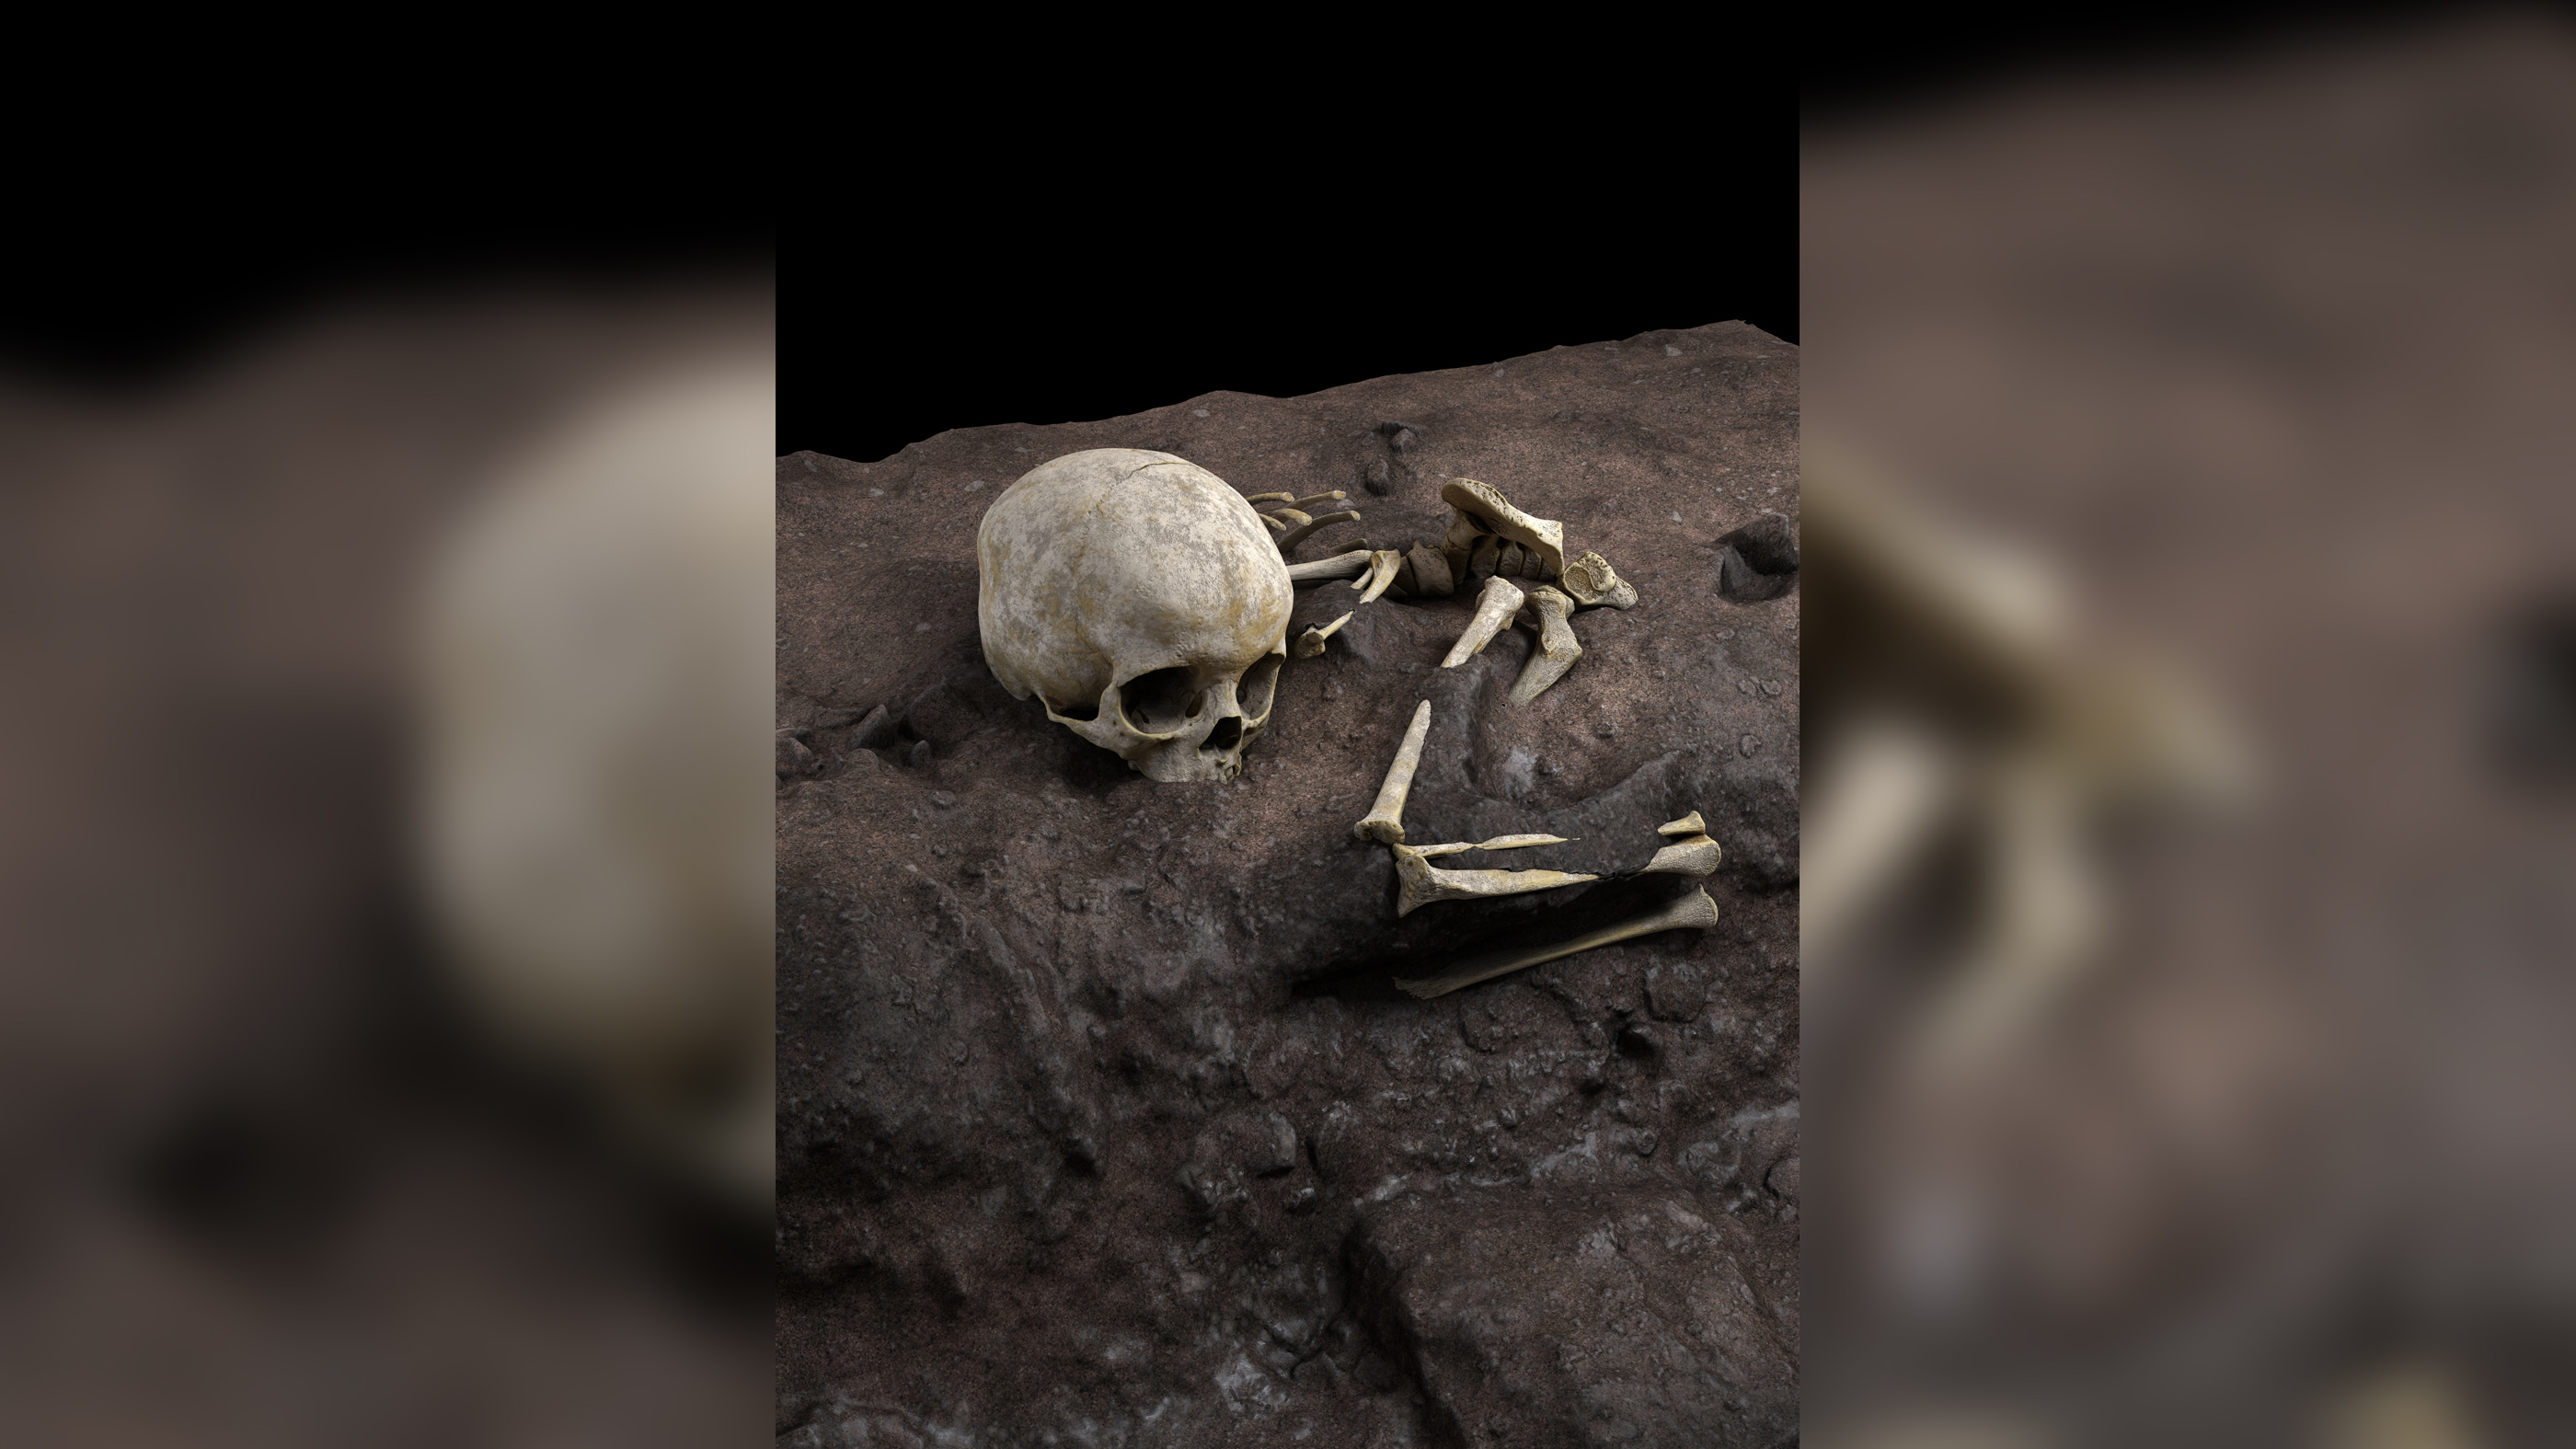 Oldest deliberate burial of a human in Africa discovered thumbnail